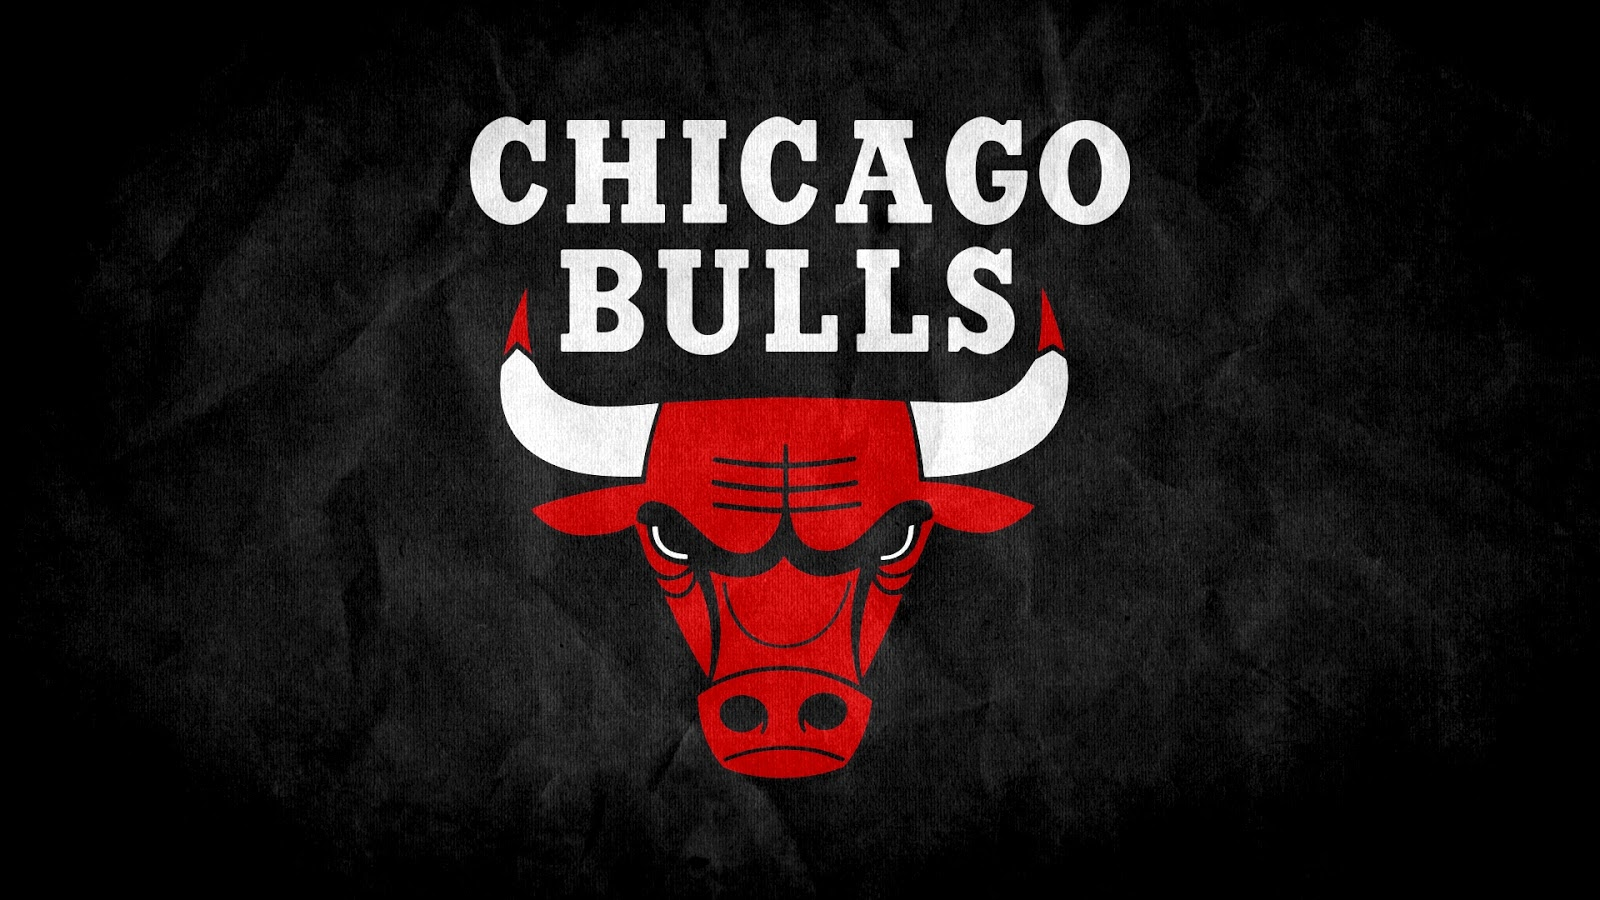 Chicago BullsChicago Bulls 2013chicago bulls rosterchicago bulls 1600x900